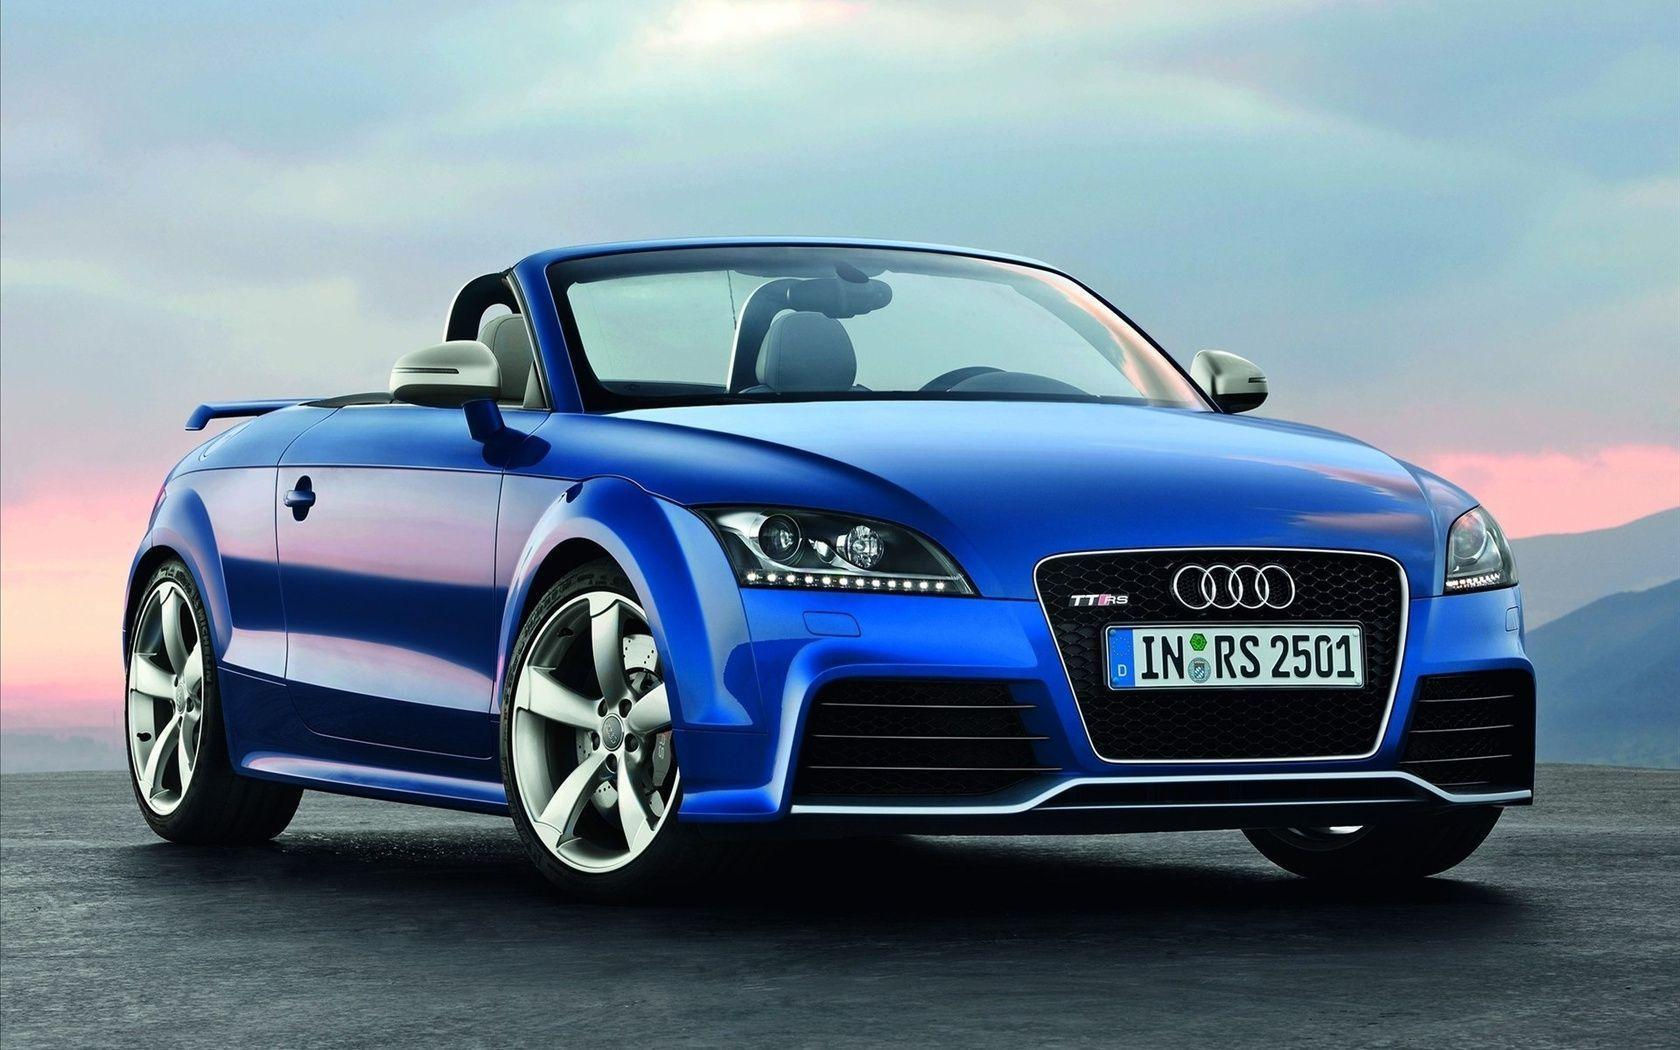 Stunning Blue Car Wallpapers photos of Blue Car HD Wallpapers: by